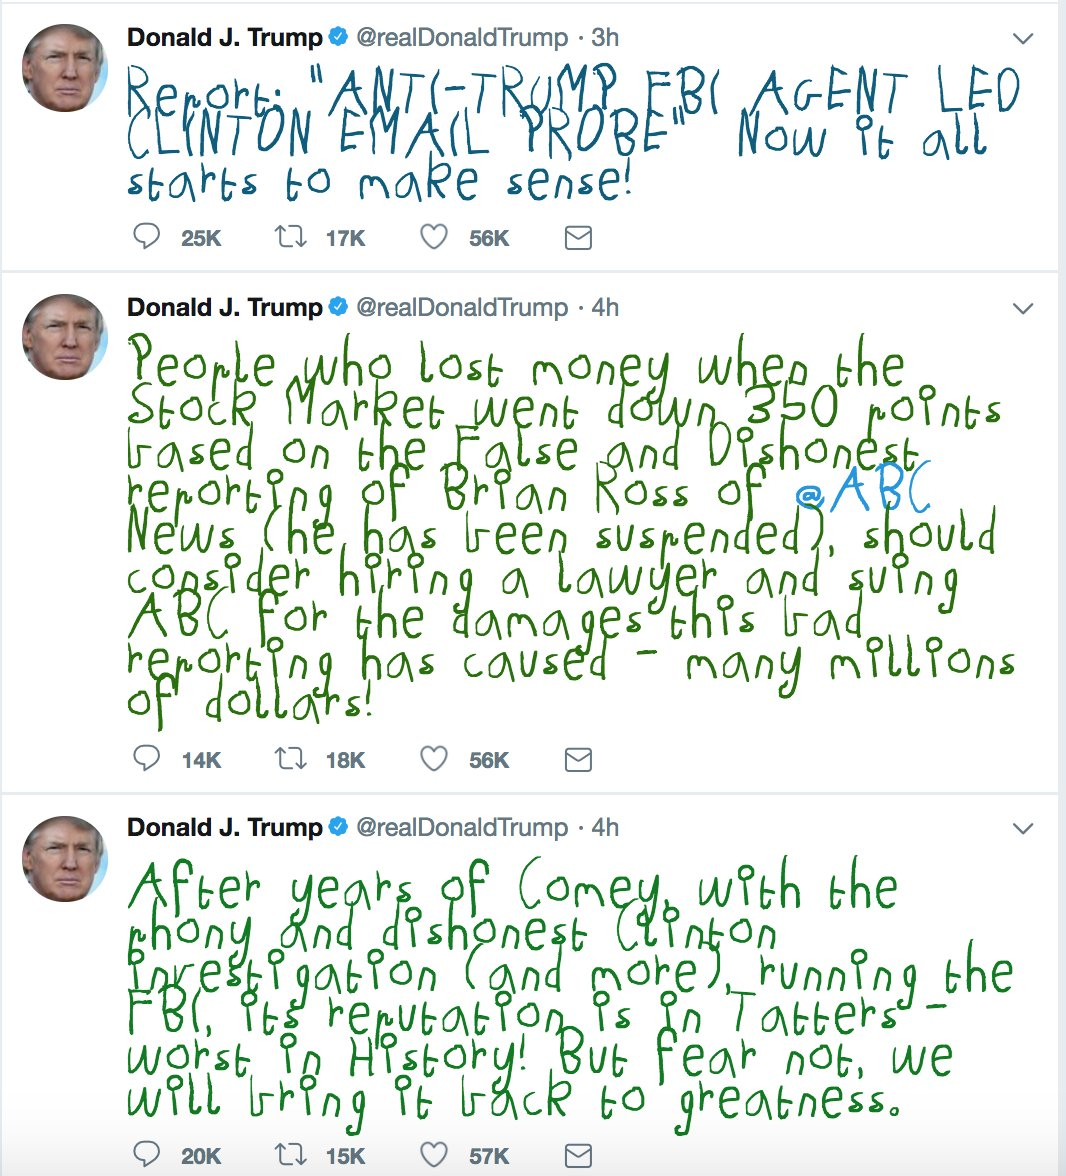 The Chrome extension that turns Trump's tweets into a child's crayon scrawls continues to reap dividends